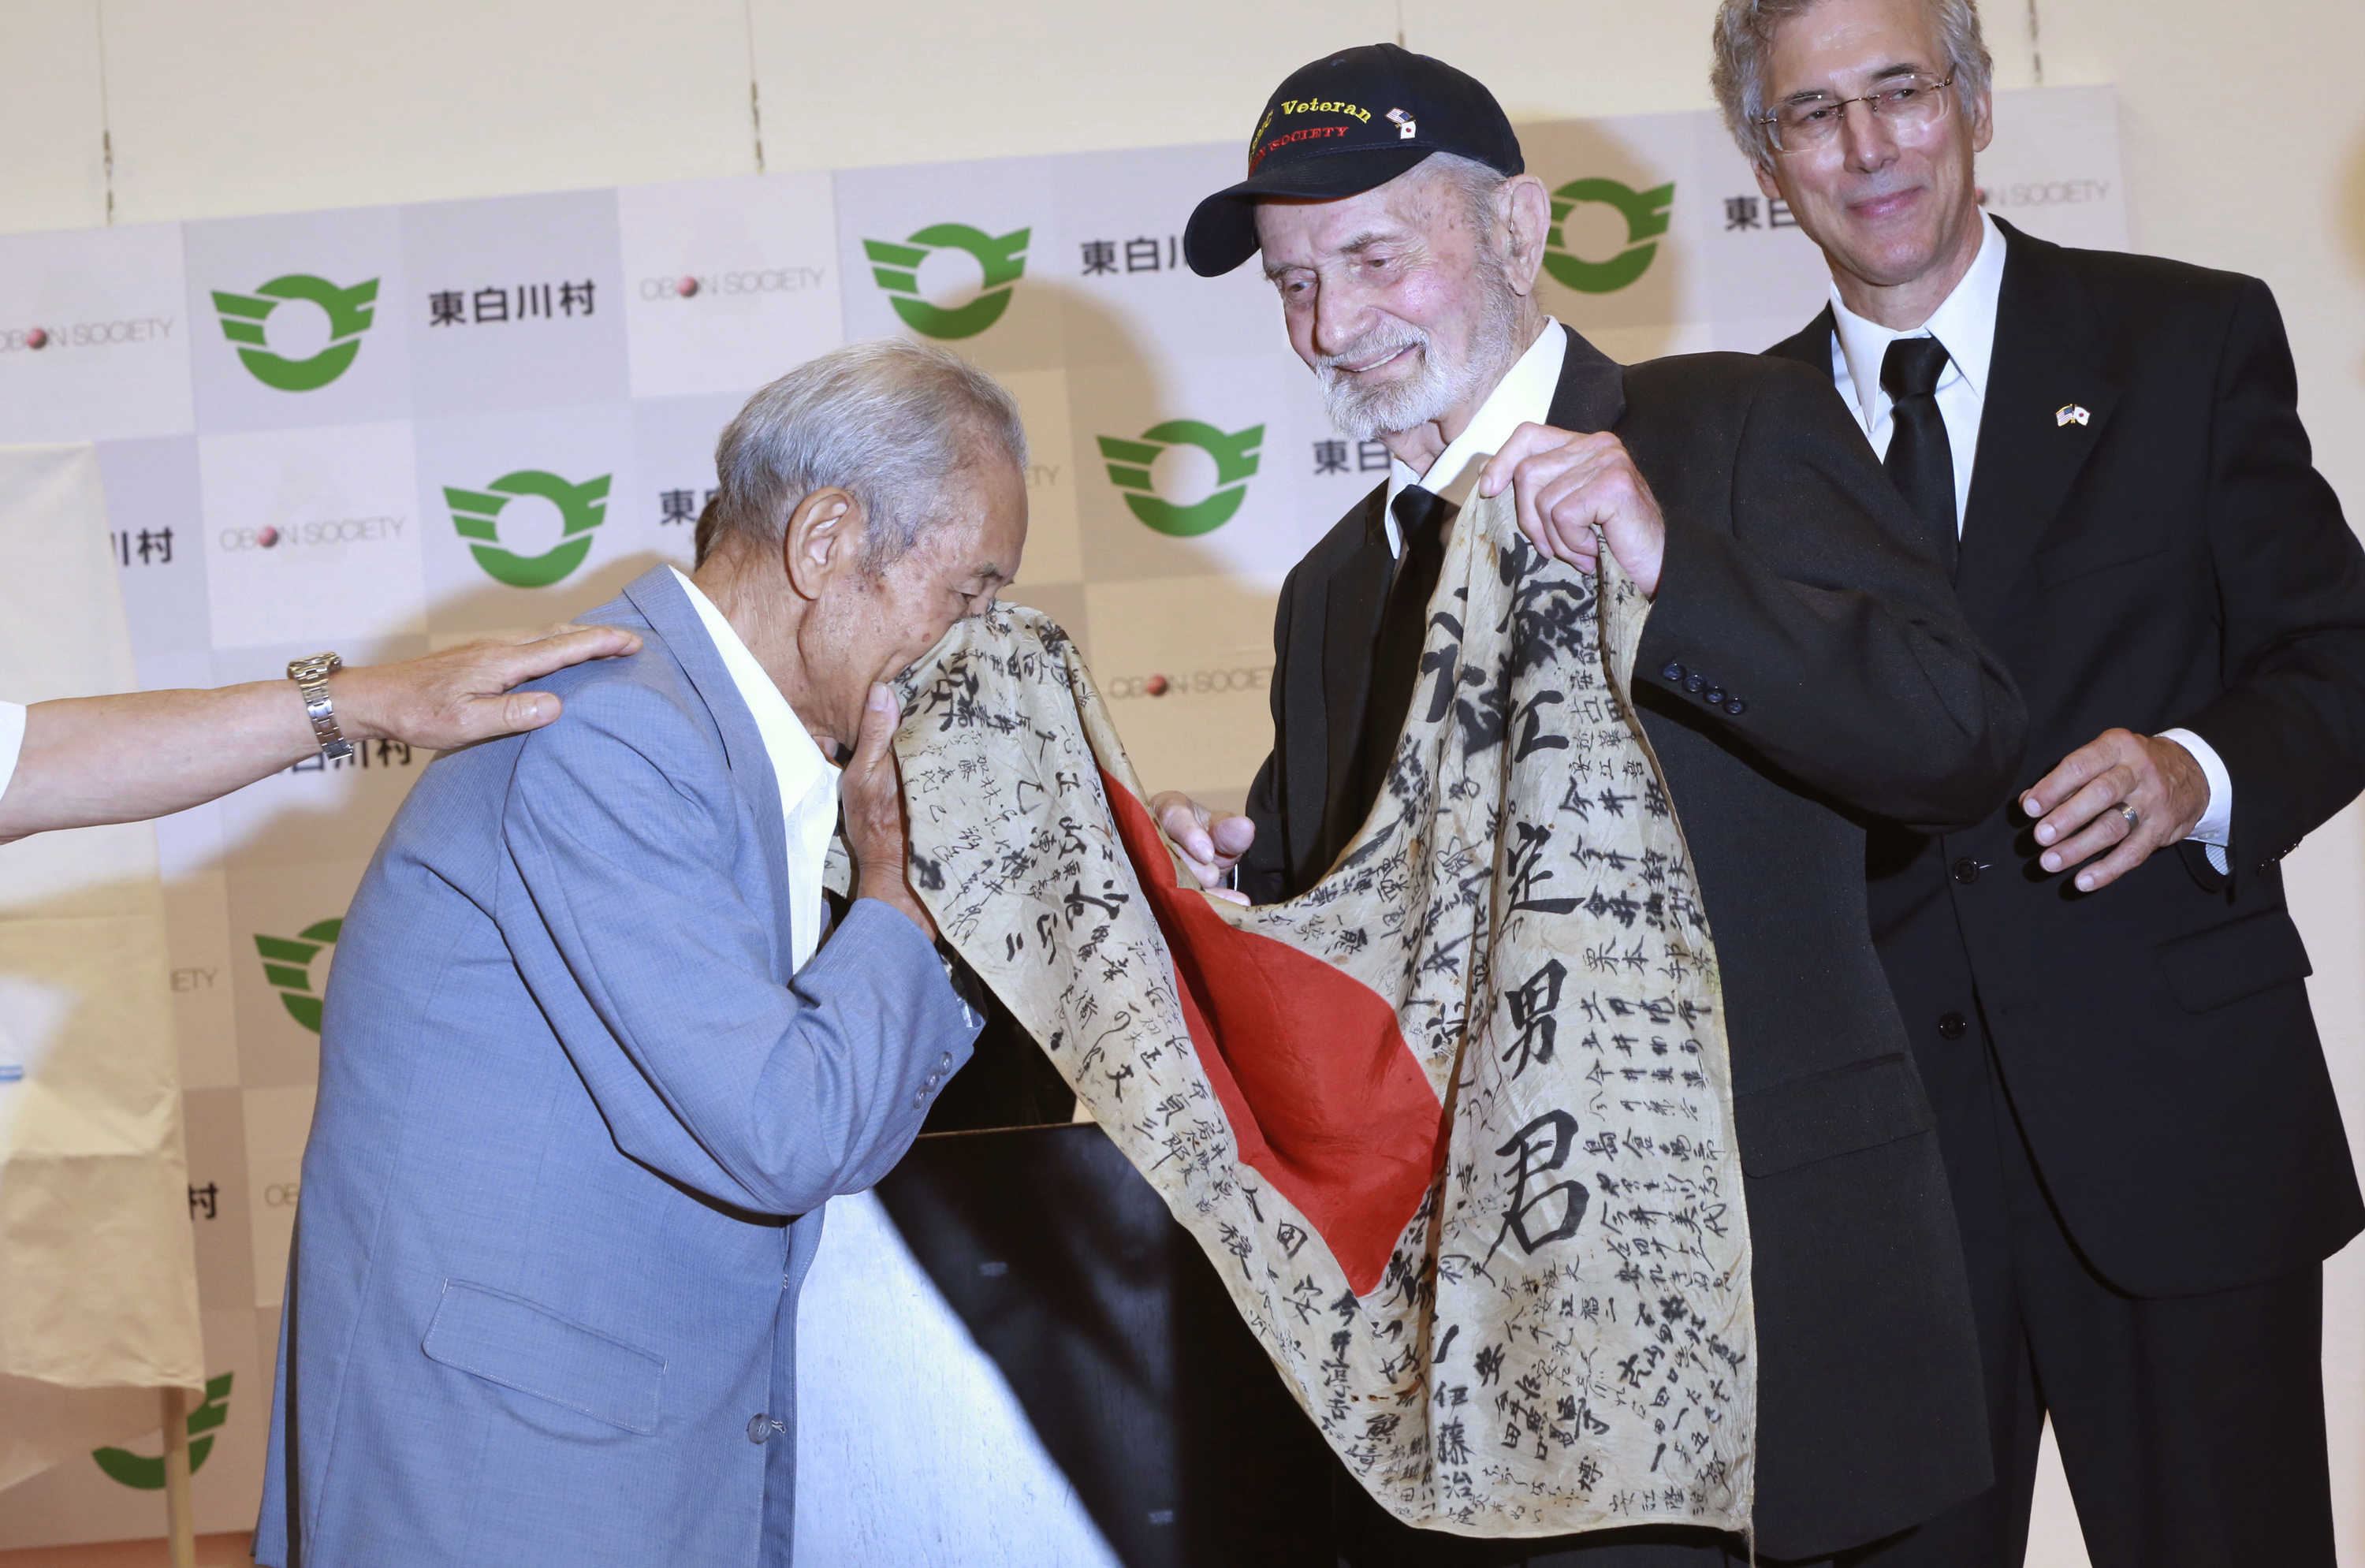 WWII veteran Marvin Strombo, center, returns to Tatsuya Yasue, left, a Japanese flag with autographed messages which was owned by his brother Sadao Yasue, who was killed in the Pacific during World Work II, during a ceremony in Higashishirakawa, in central Japan's Gifu prefecture Tuesday, Aug. 15, 2017. (Eugene Hoshiko/AP)